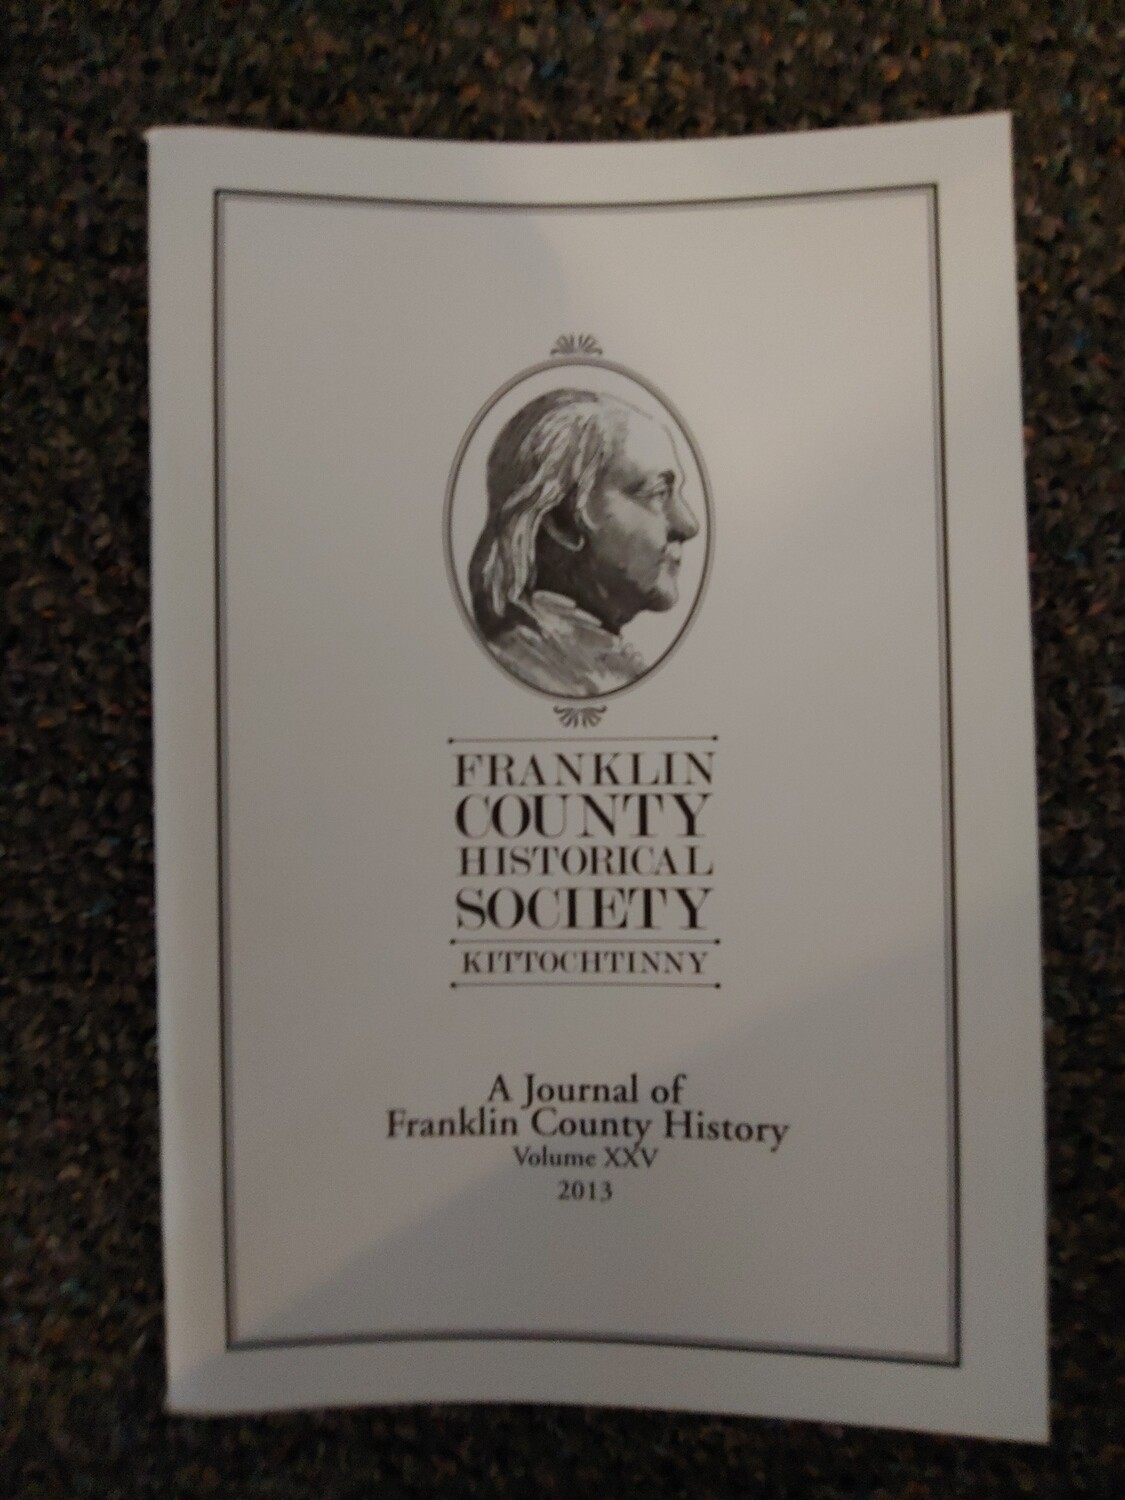 Franklin County Historical Society Journal 2013